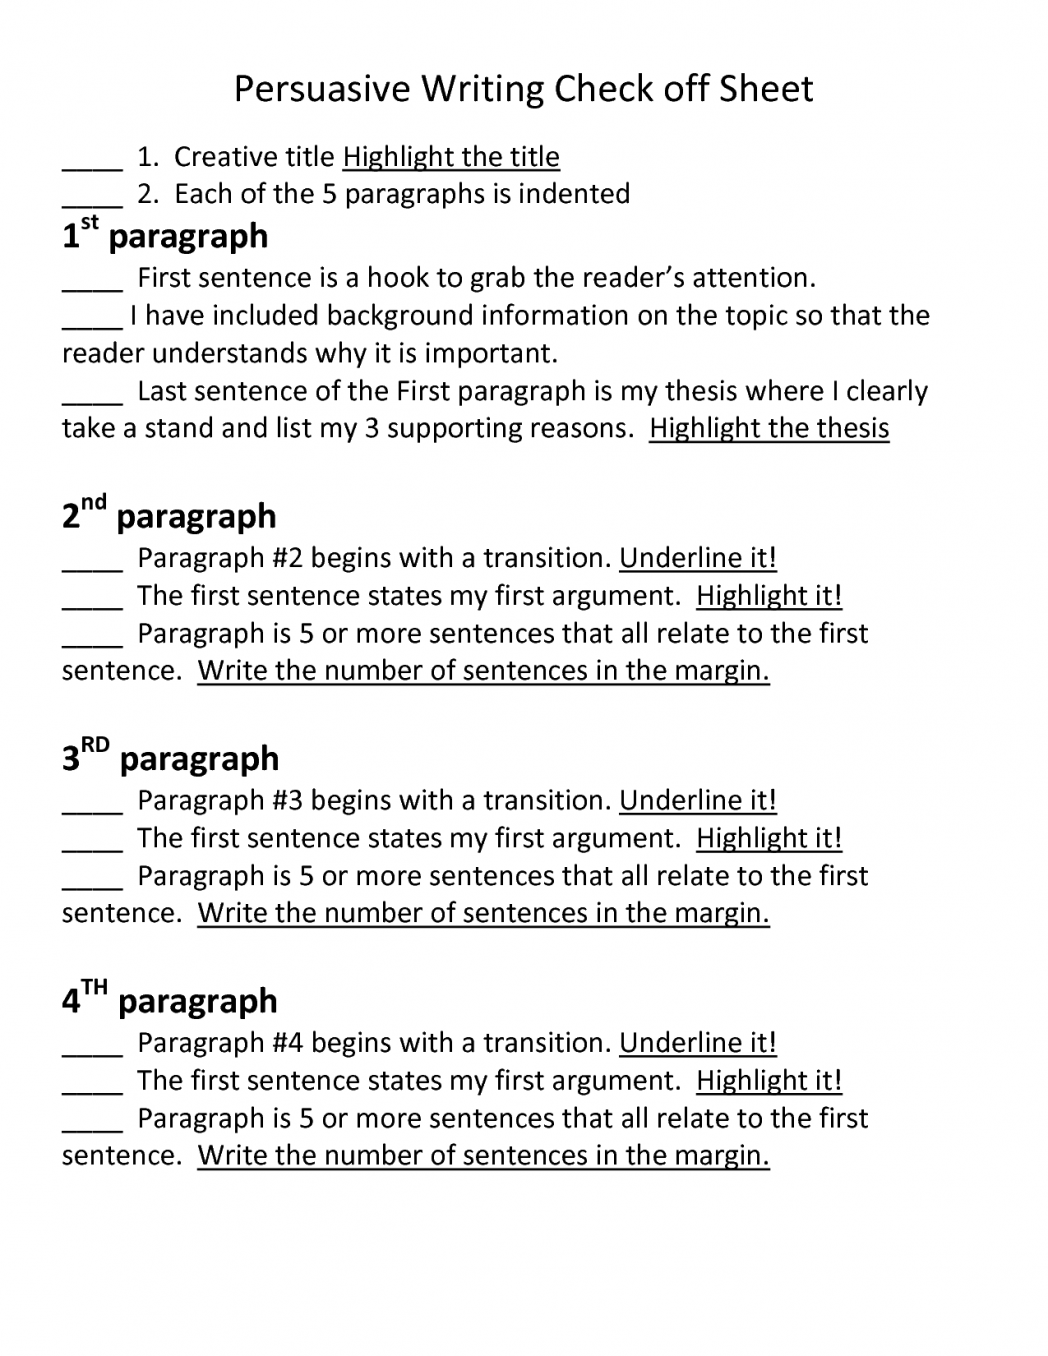 006 Attention Grabbers For Essayss Informative Essay Of Persuasive Expository 1048x1356 Unforgettable Essays Examples Full